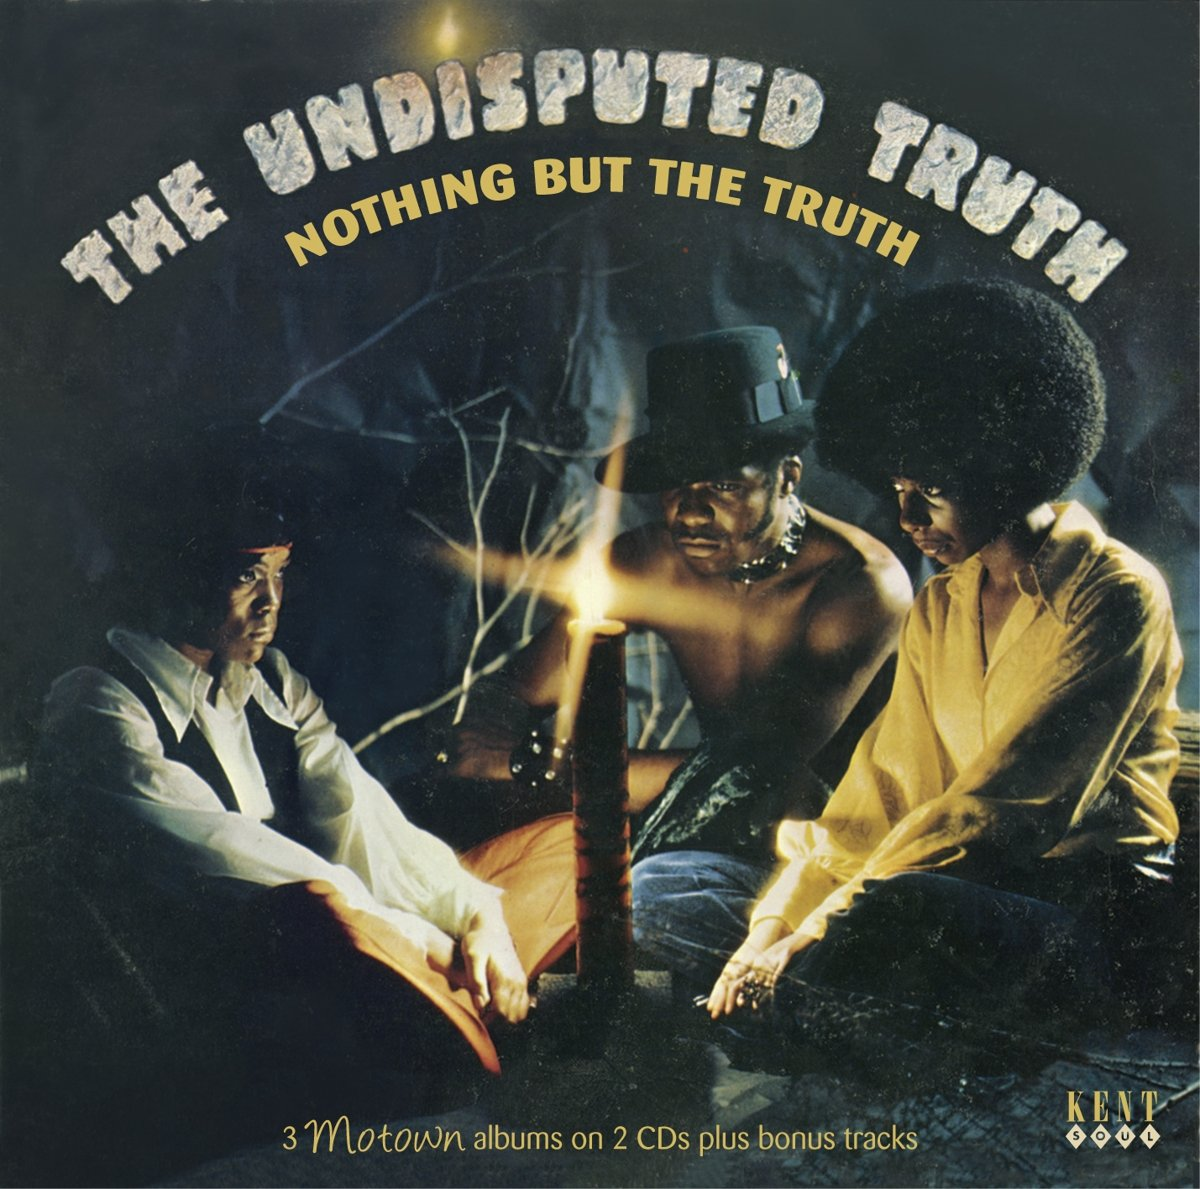 CD : The Undisputed Truth - Nothing But The Truth: 3 Motown Albums (Bonus Tracks, United Kingdom - Import, 2 Disc)